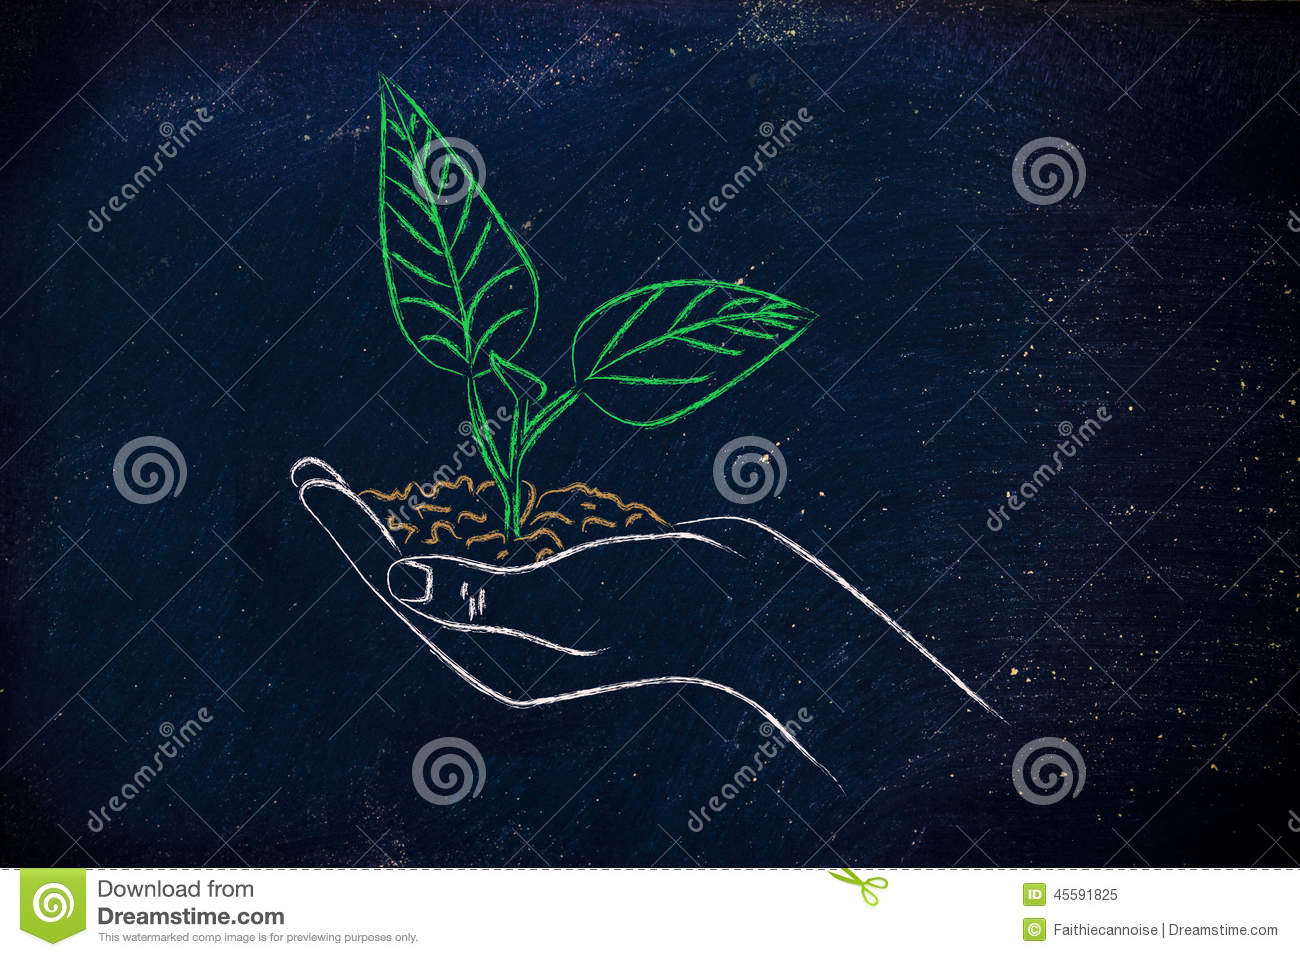 Concept of green economy, hands holding new plant